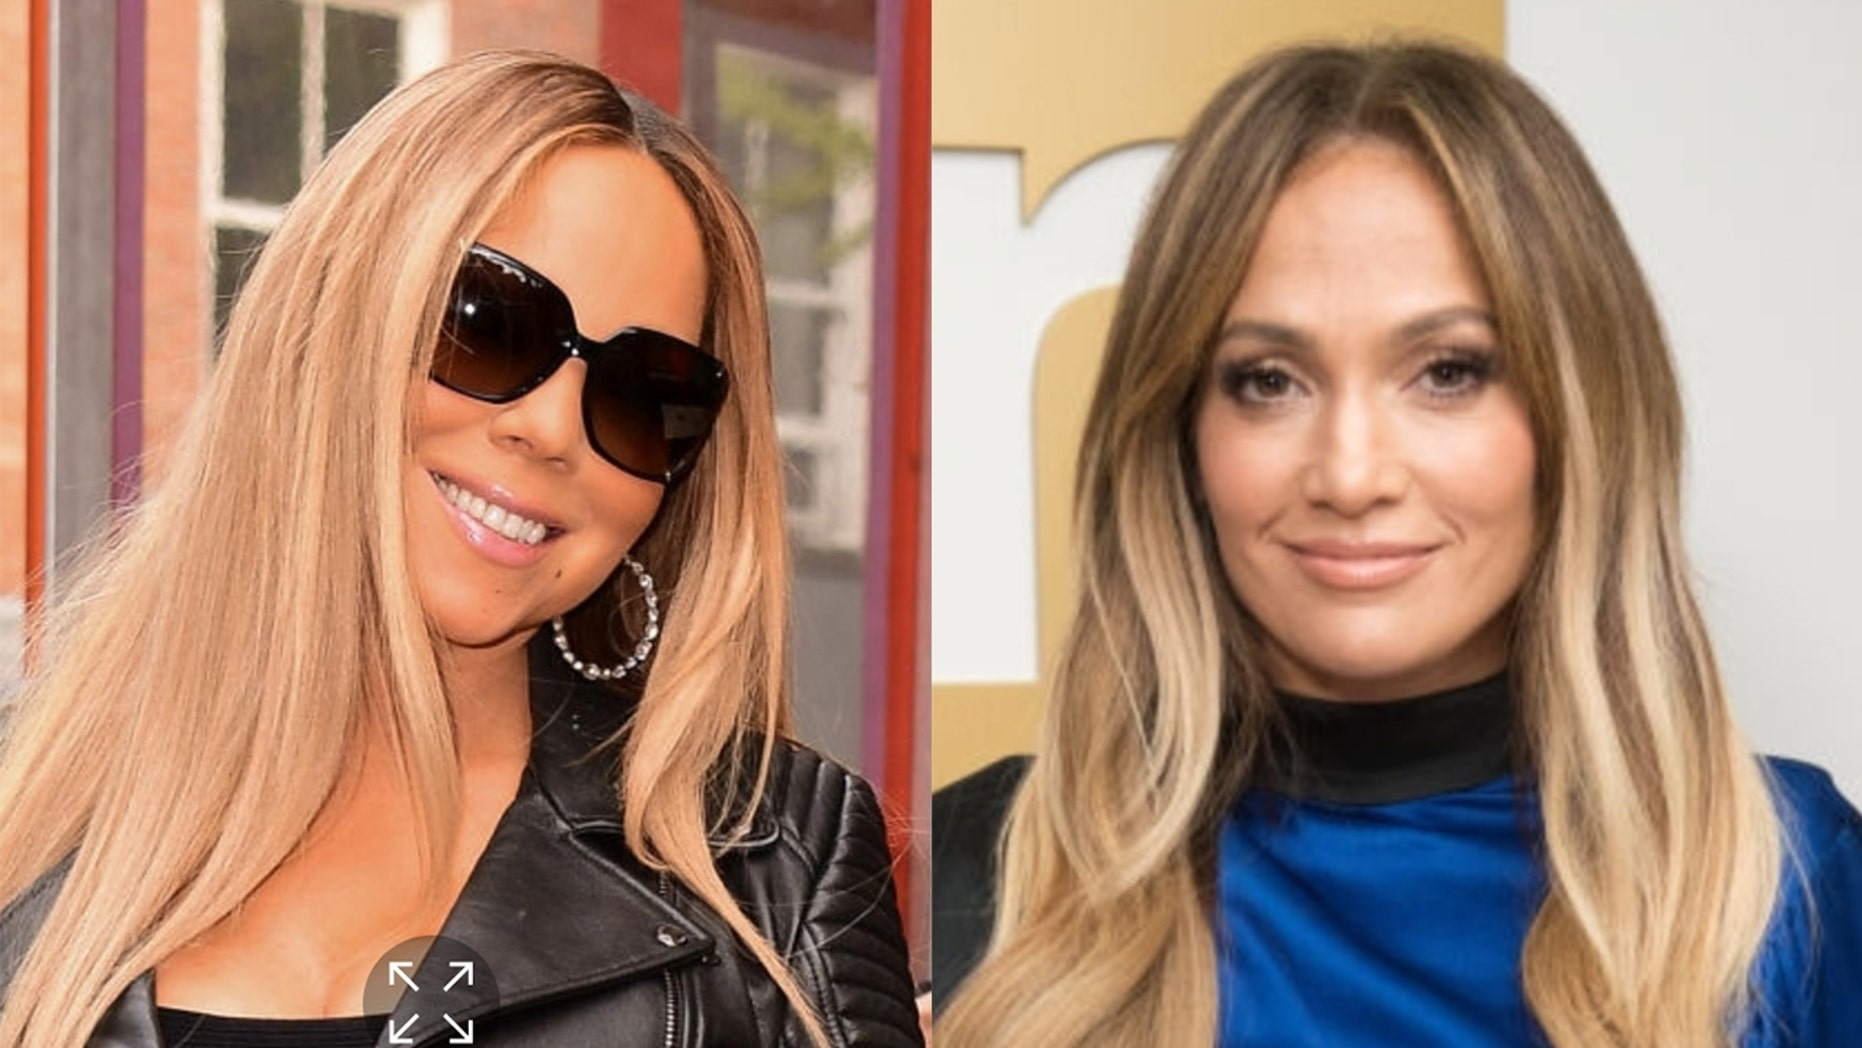 Mariah Carey and Jennifer Lopez are ready to bury their alleged hatchet once and for all.